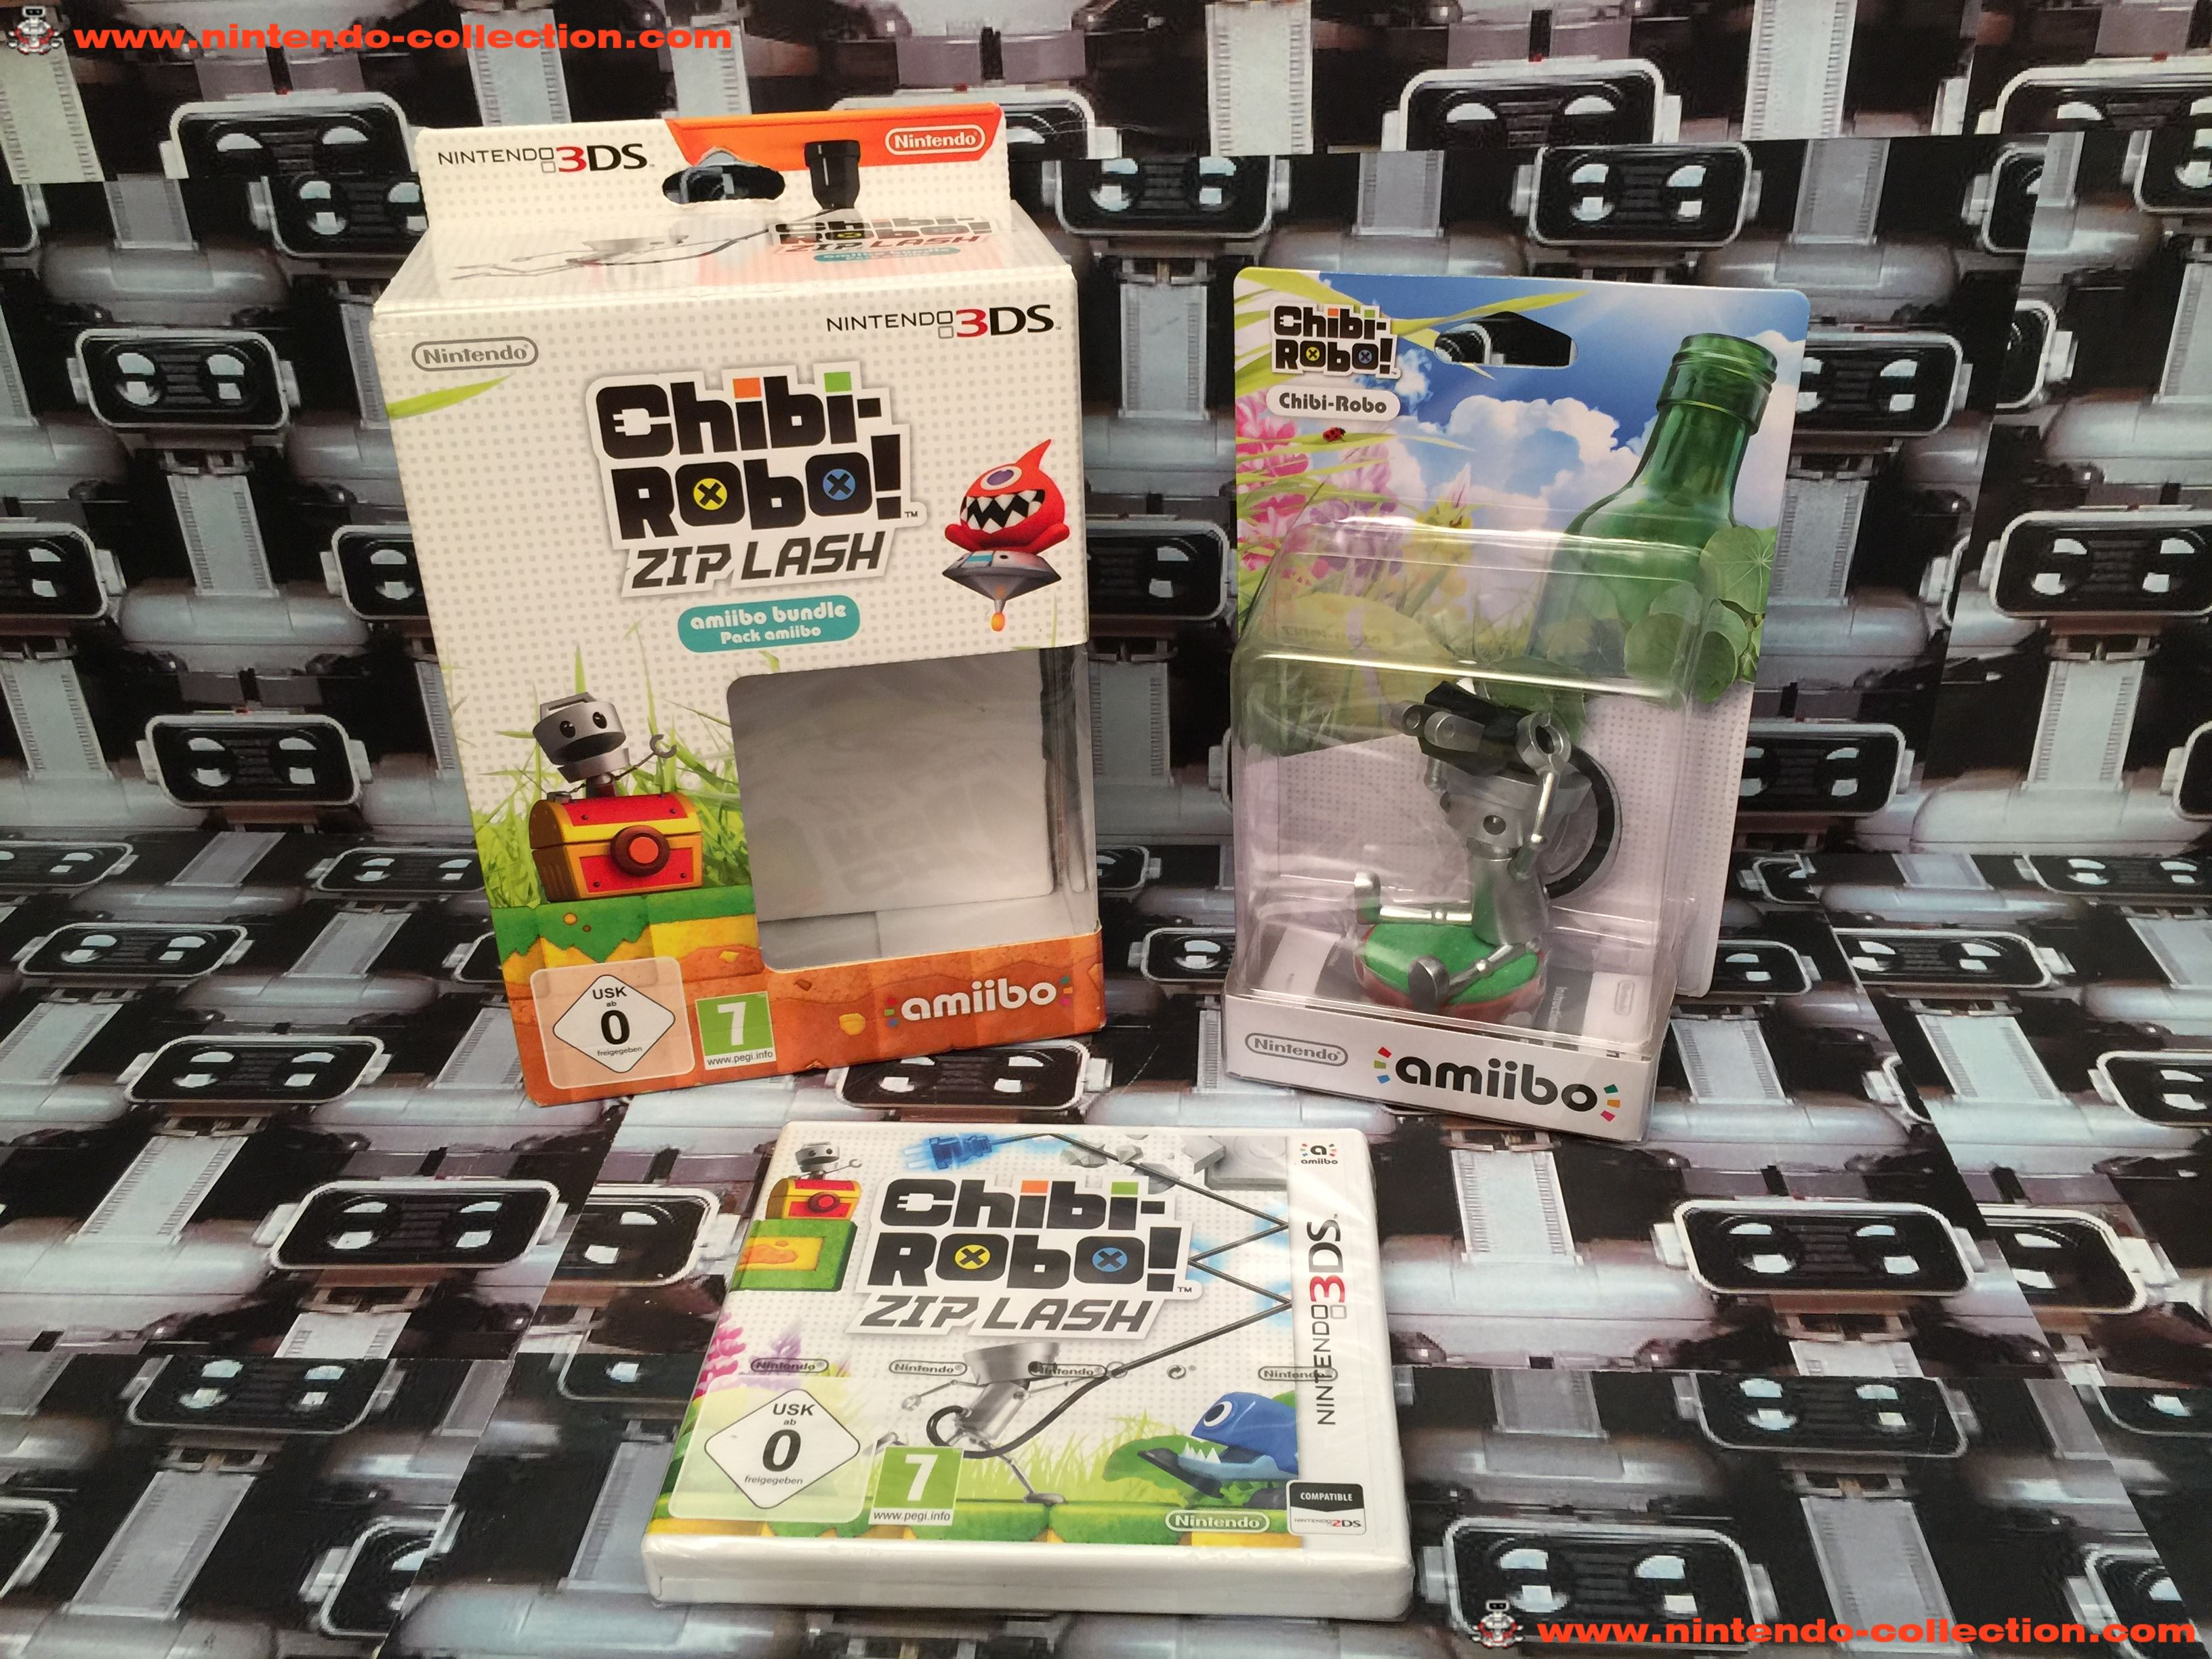 www.nintendo-collection.com - Nintendo 3DS Jeux Game Collector pack Chibi-Robo! Zip Lash Amiibo Bund